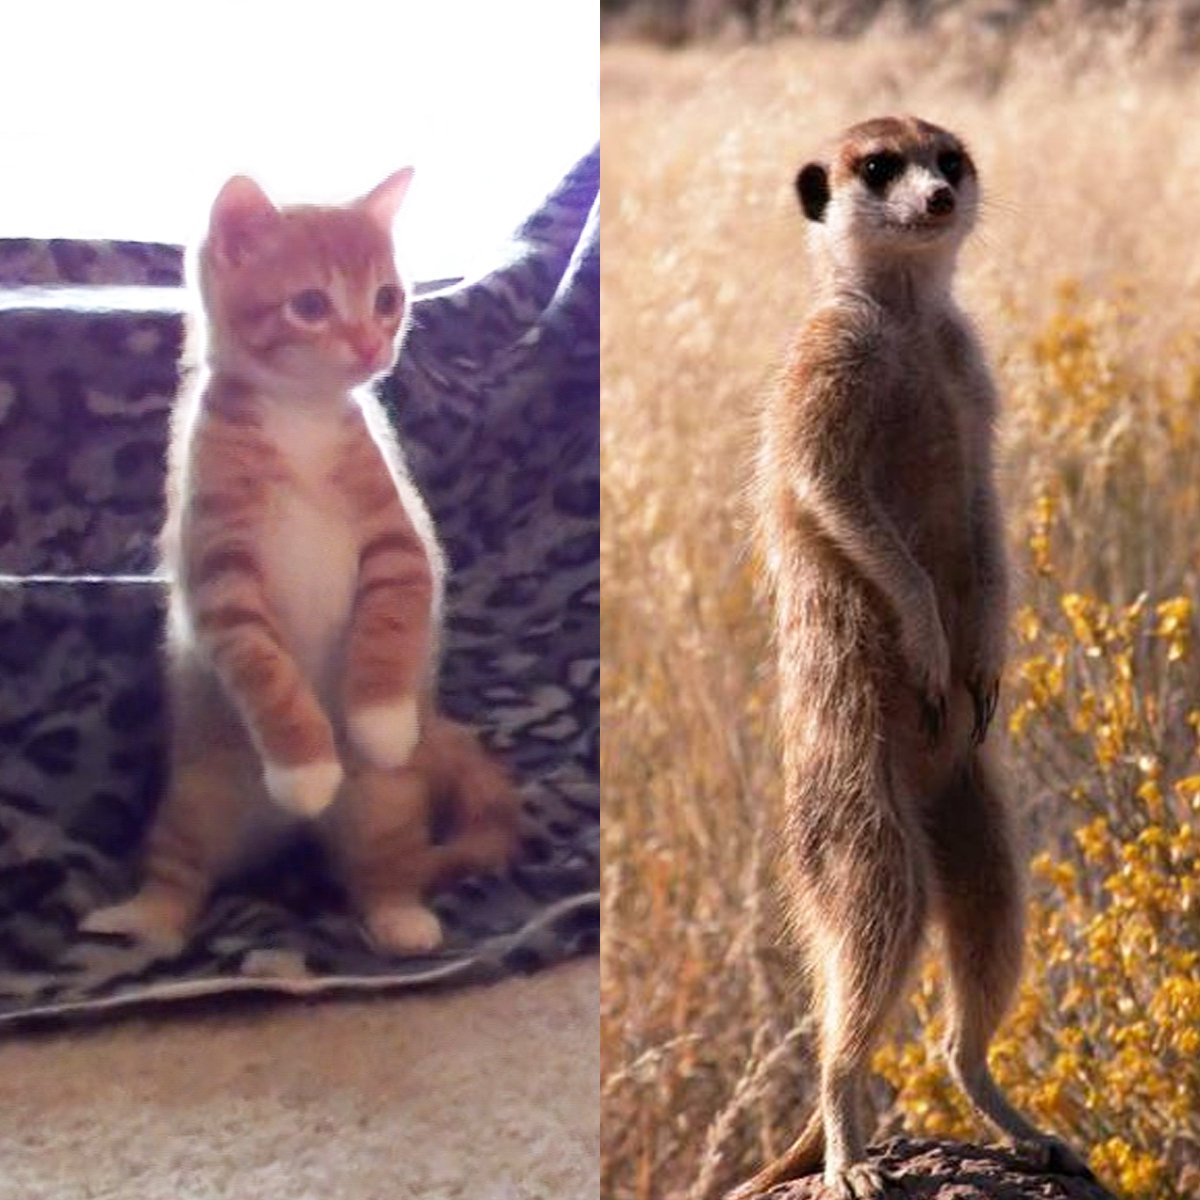 Flashback to when Marmalade did his first meerkat impression, not bad right? The but the real question is, which one is cuter? :) #FlashbackFriday #MarmaladeMeerkat<br>http://pic.twitter.com/JPYcFsL4qZ